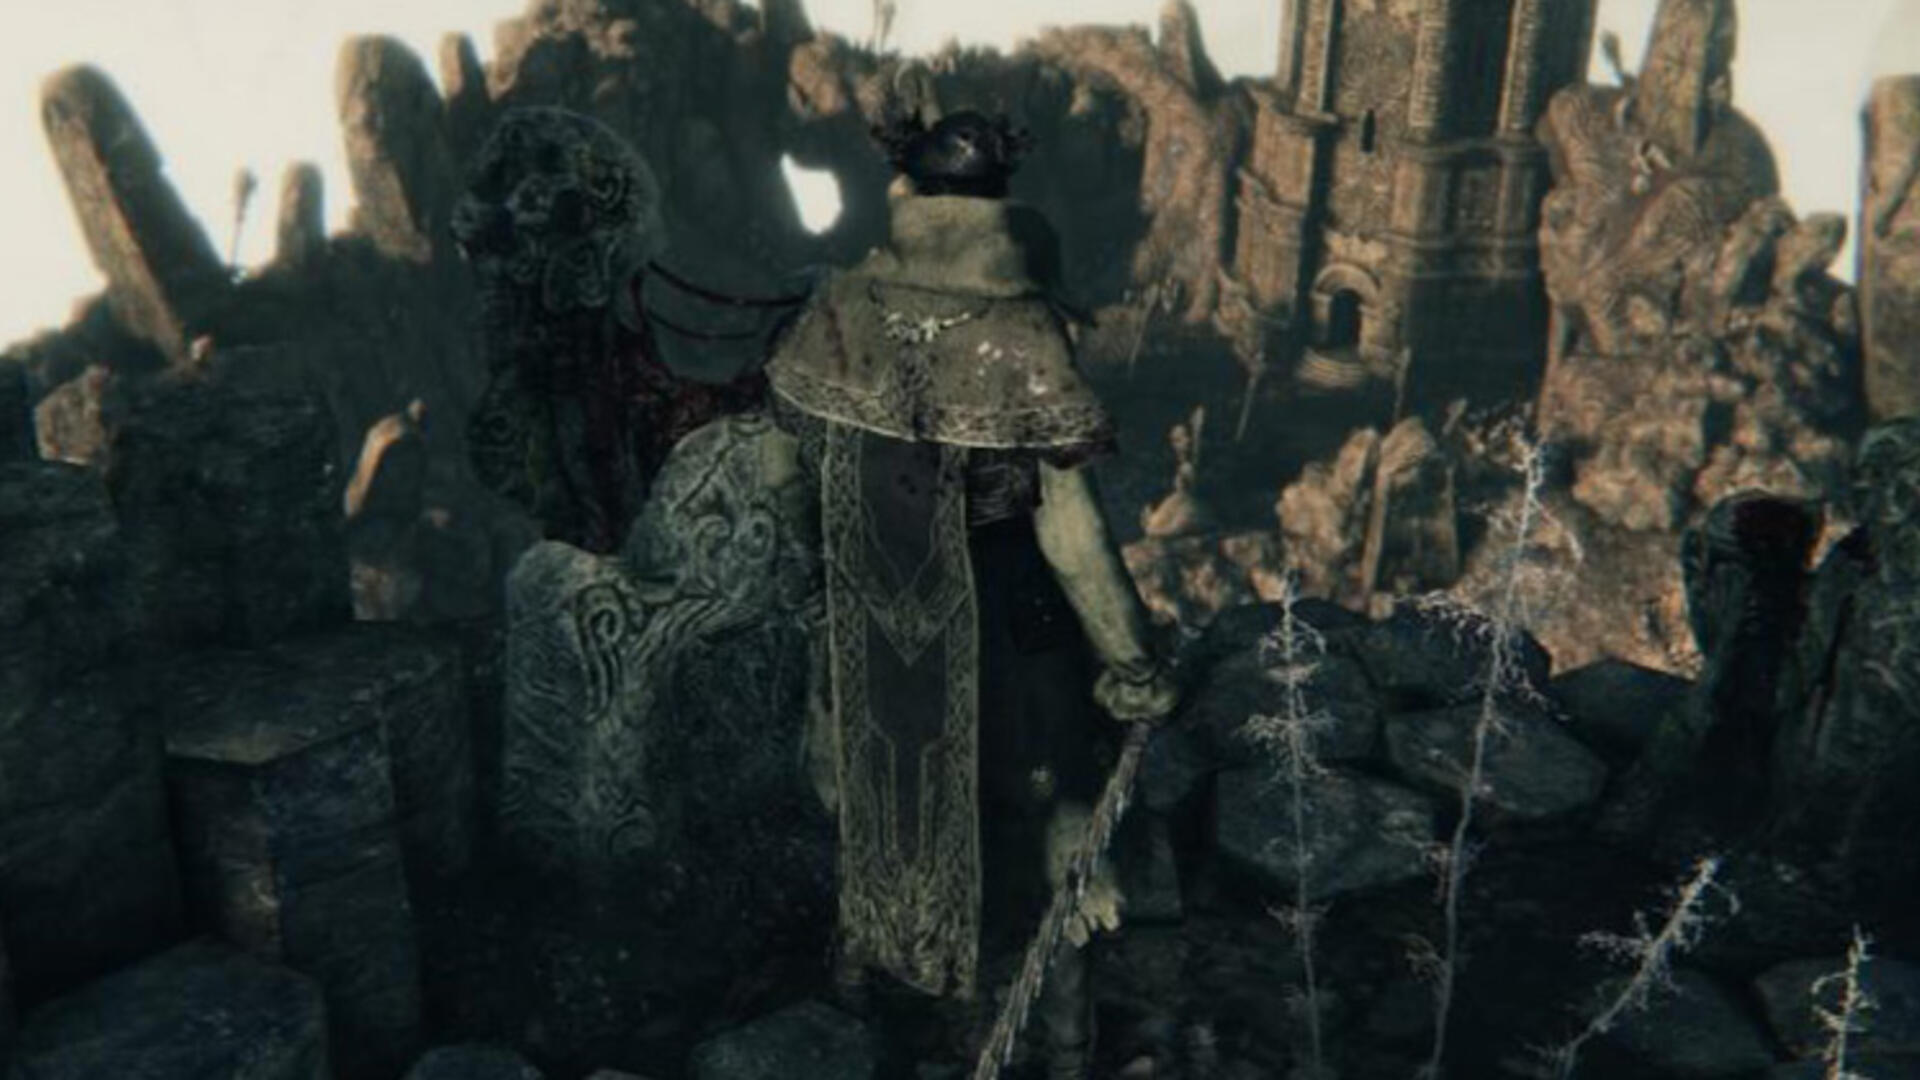 Bloodborne Bone Ash Armor Guide - How to find the Top Hat and White Church Armor